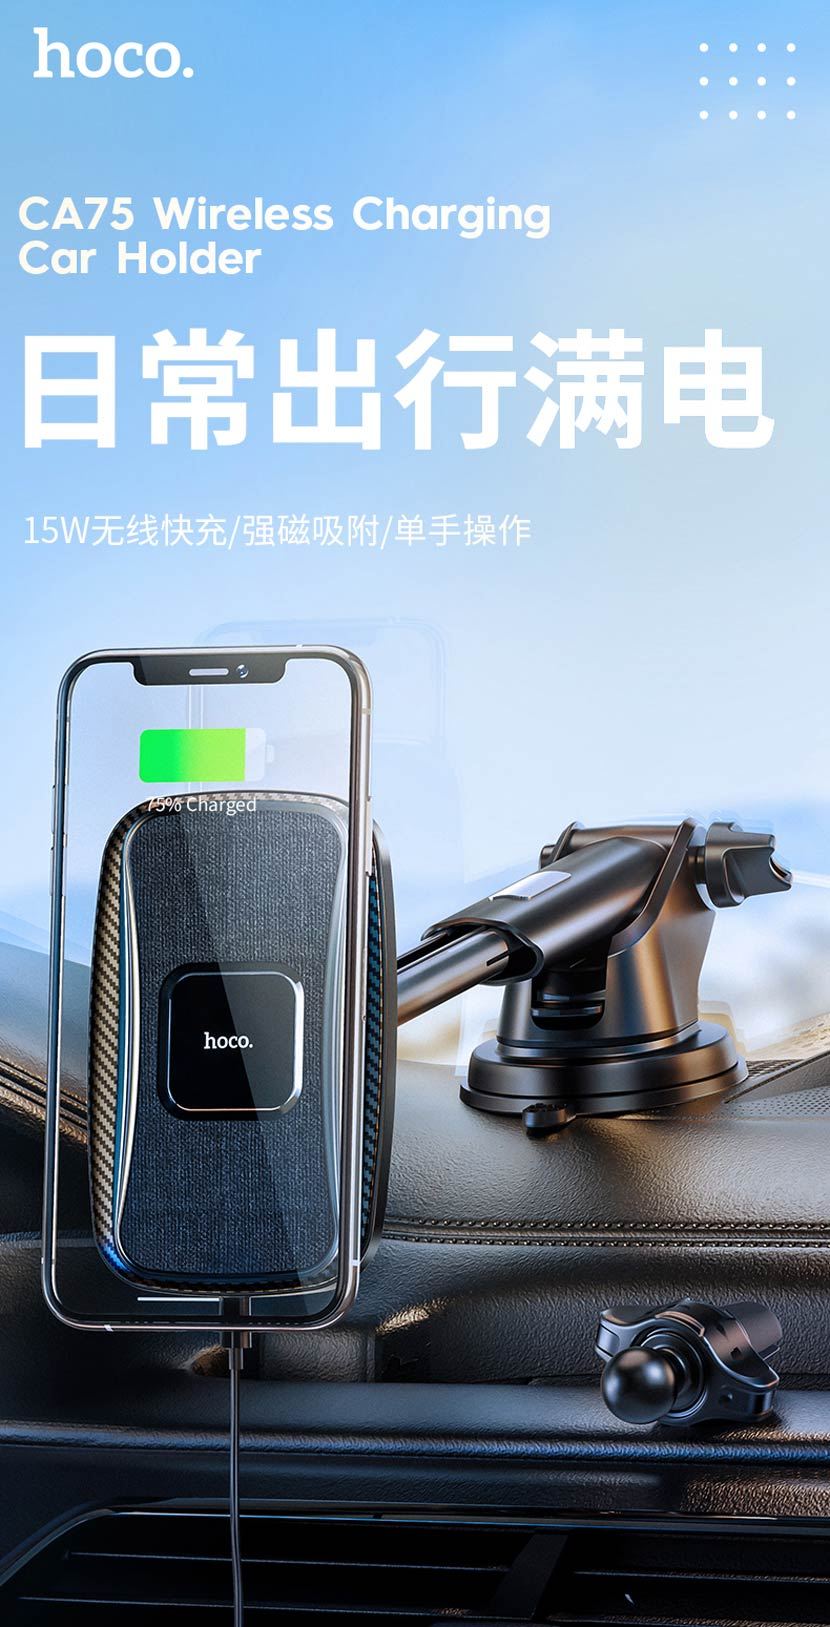 hoco news ca75 magnetic wireless charging car holder cn